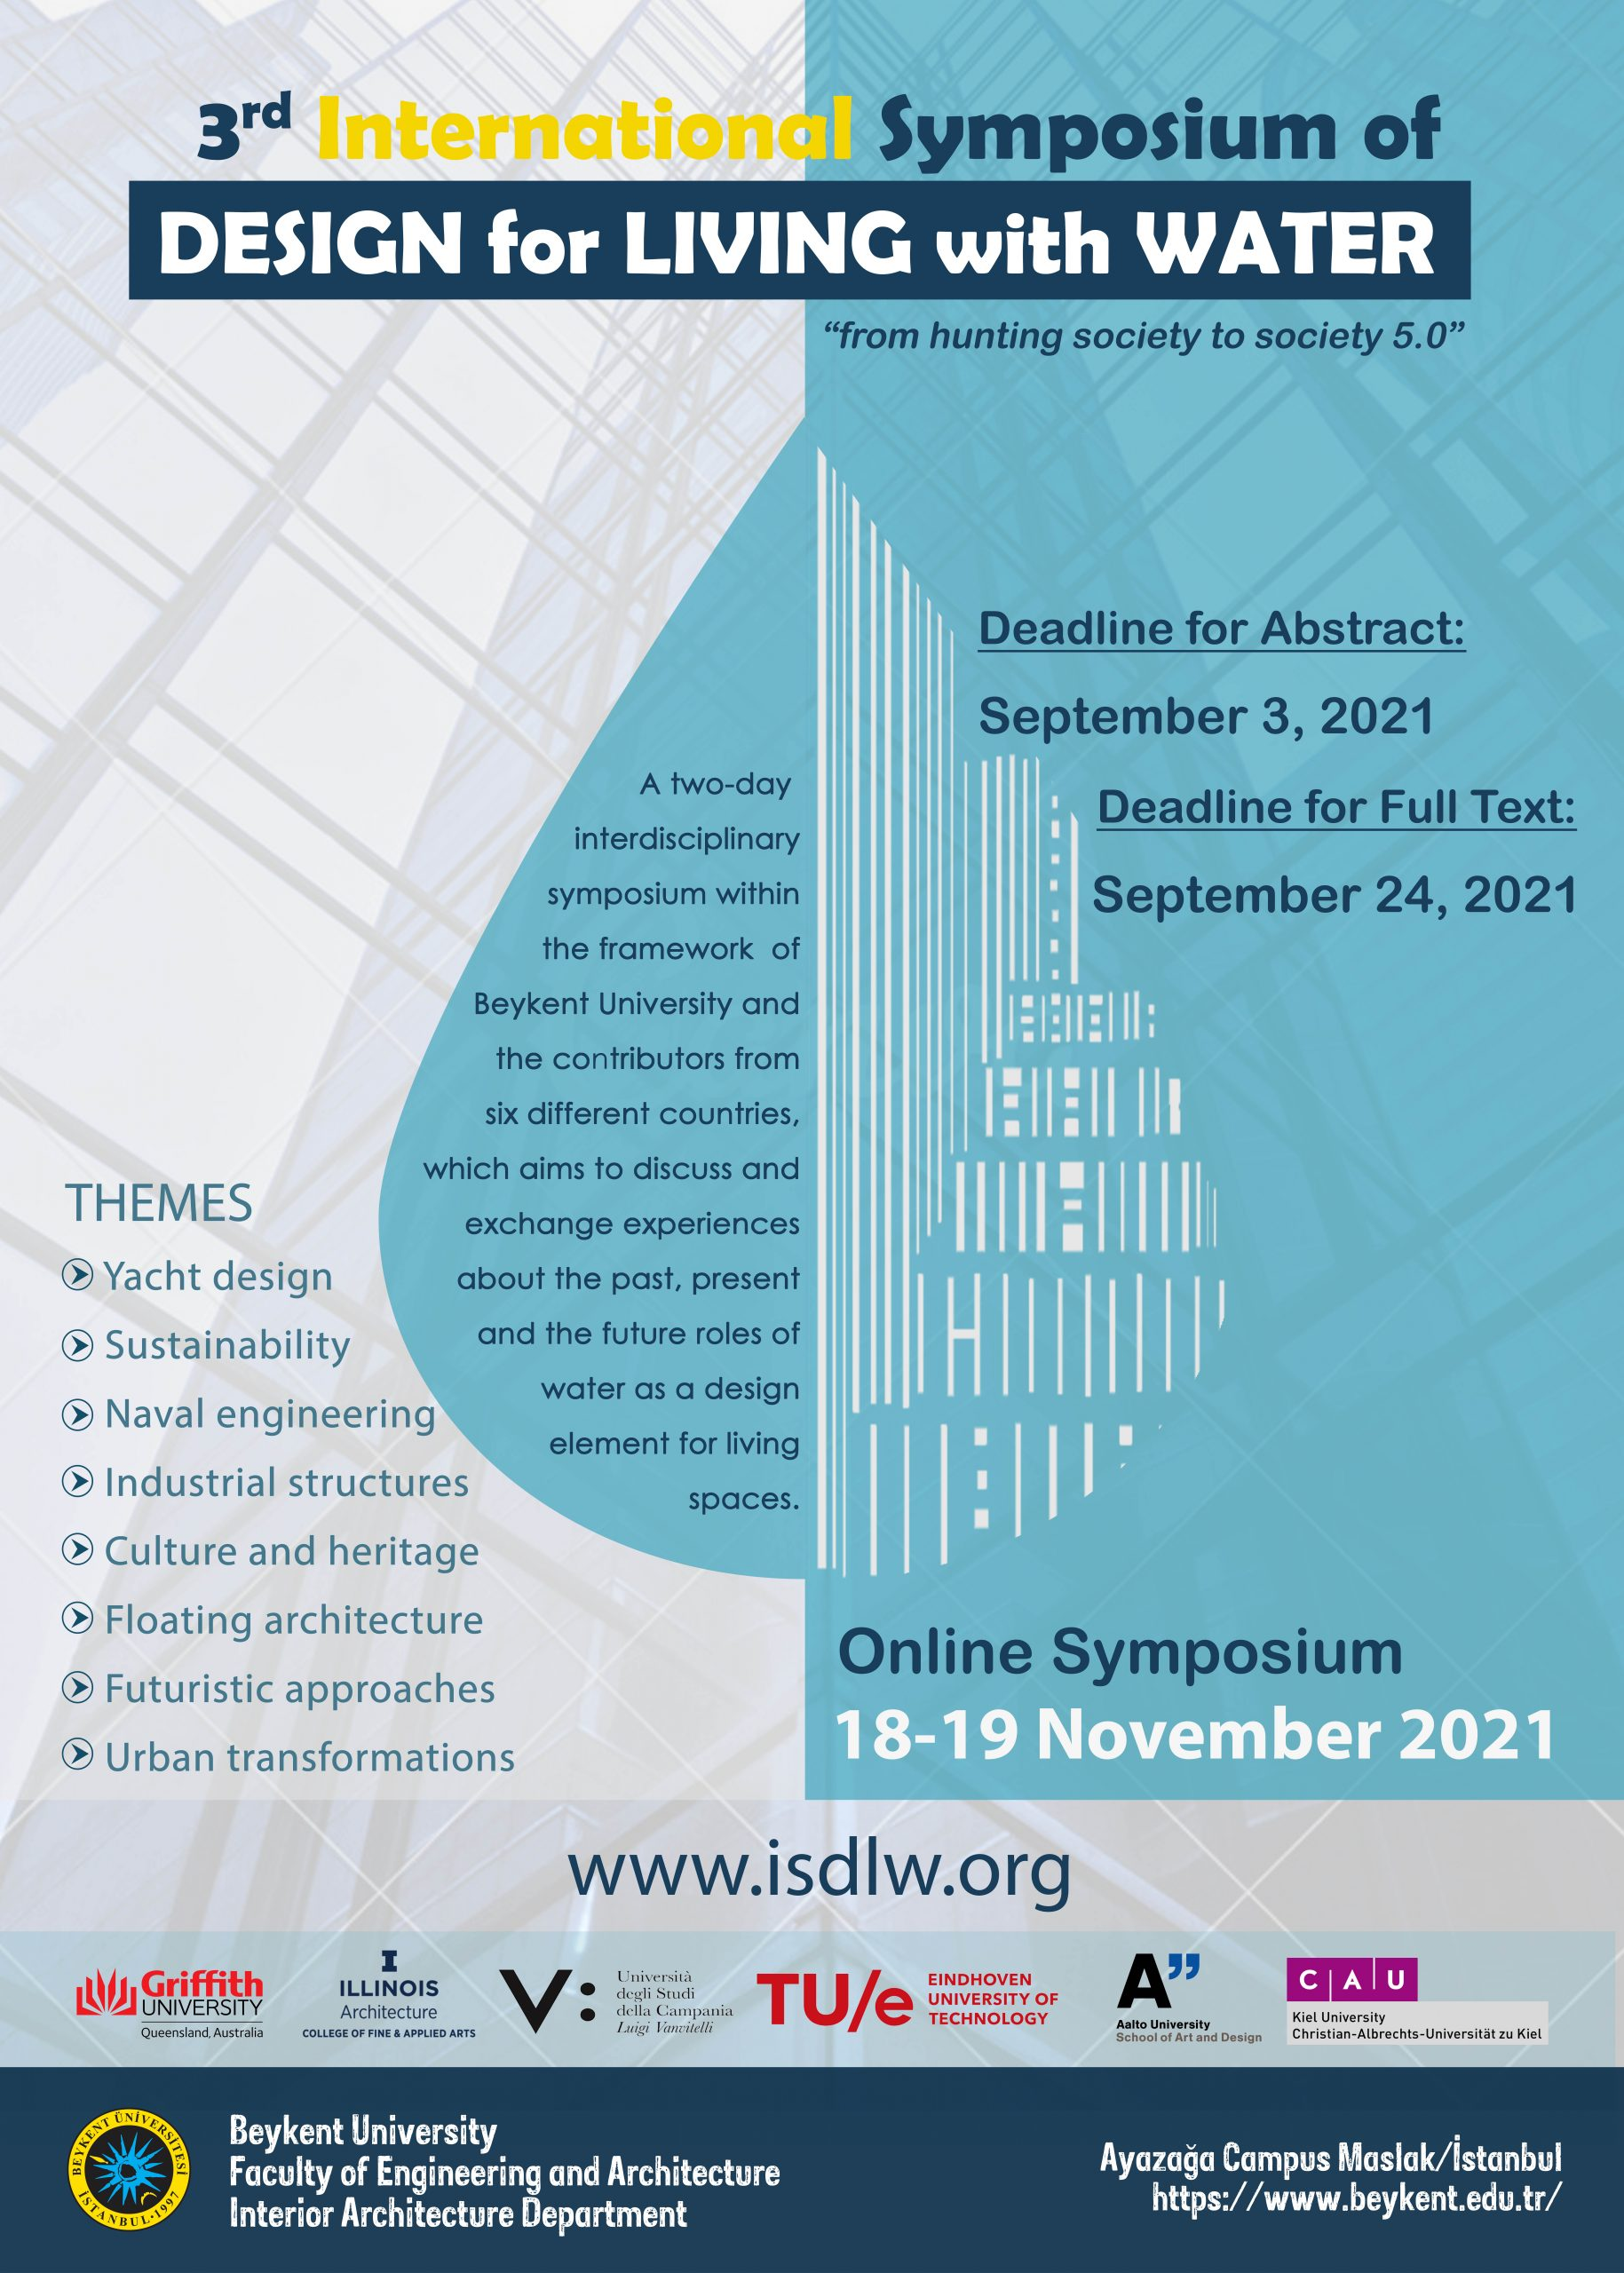 3rd International Symposium of Design for Living with Water – ISDLW-III